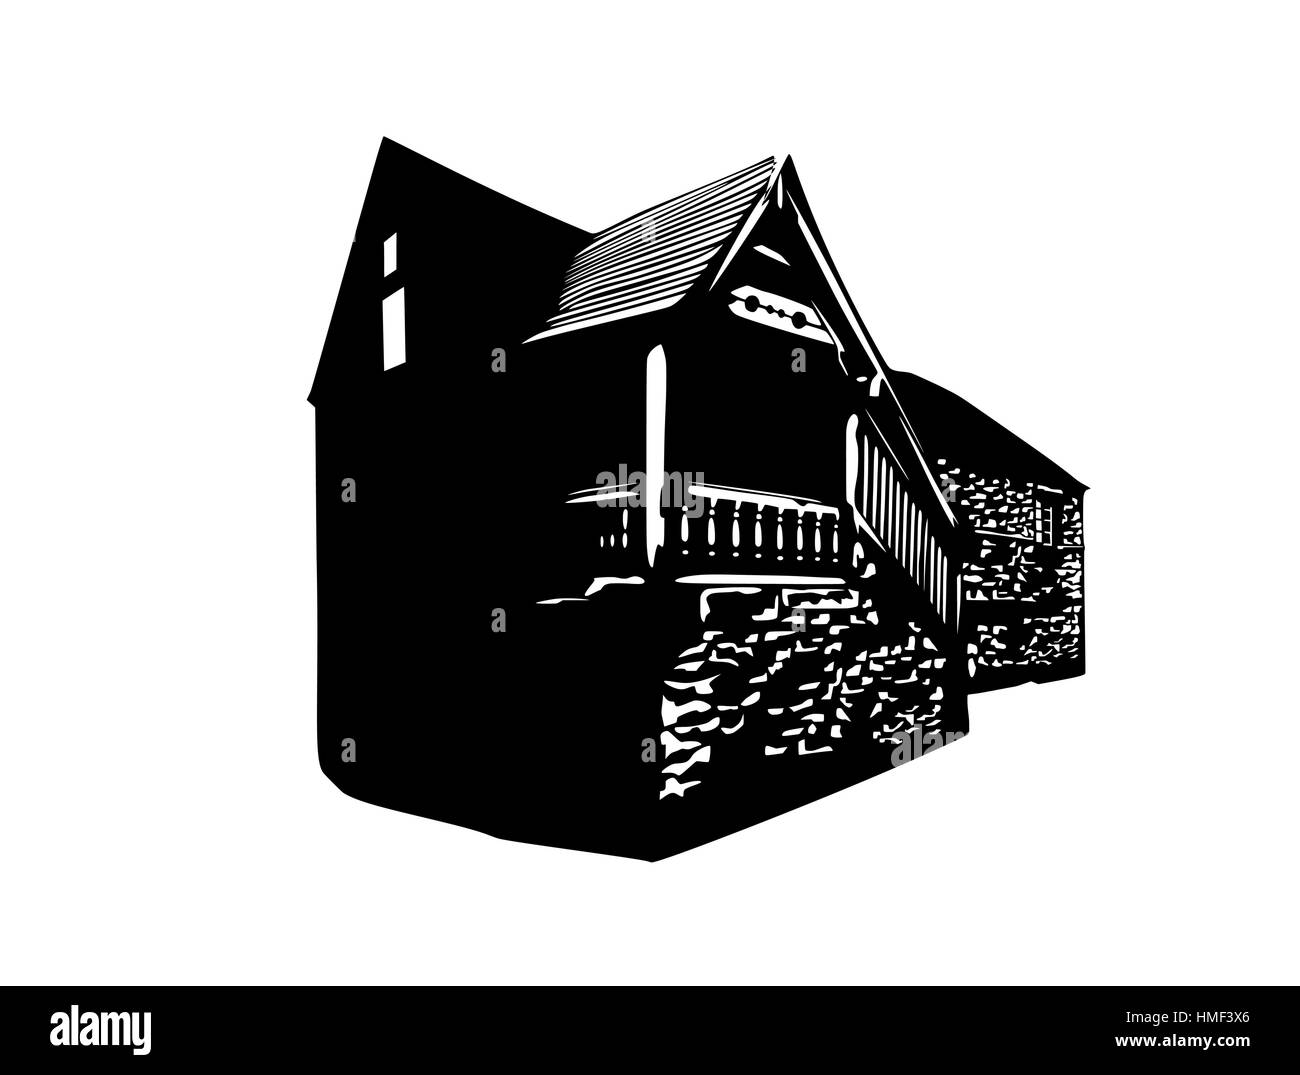 Vector silhouette of an old English rural house - Stock Vector